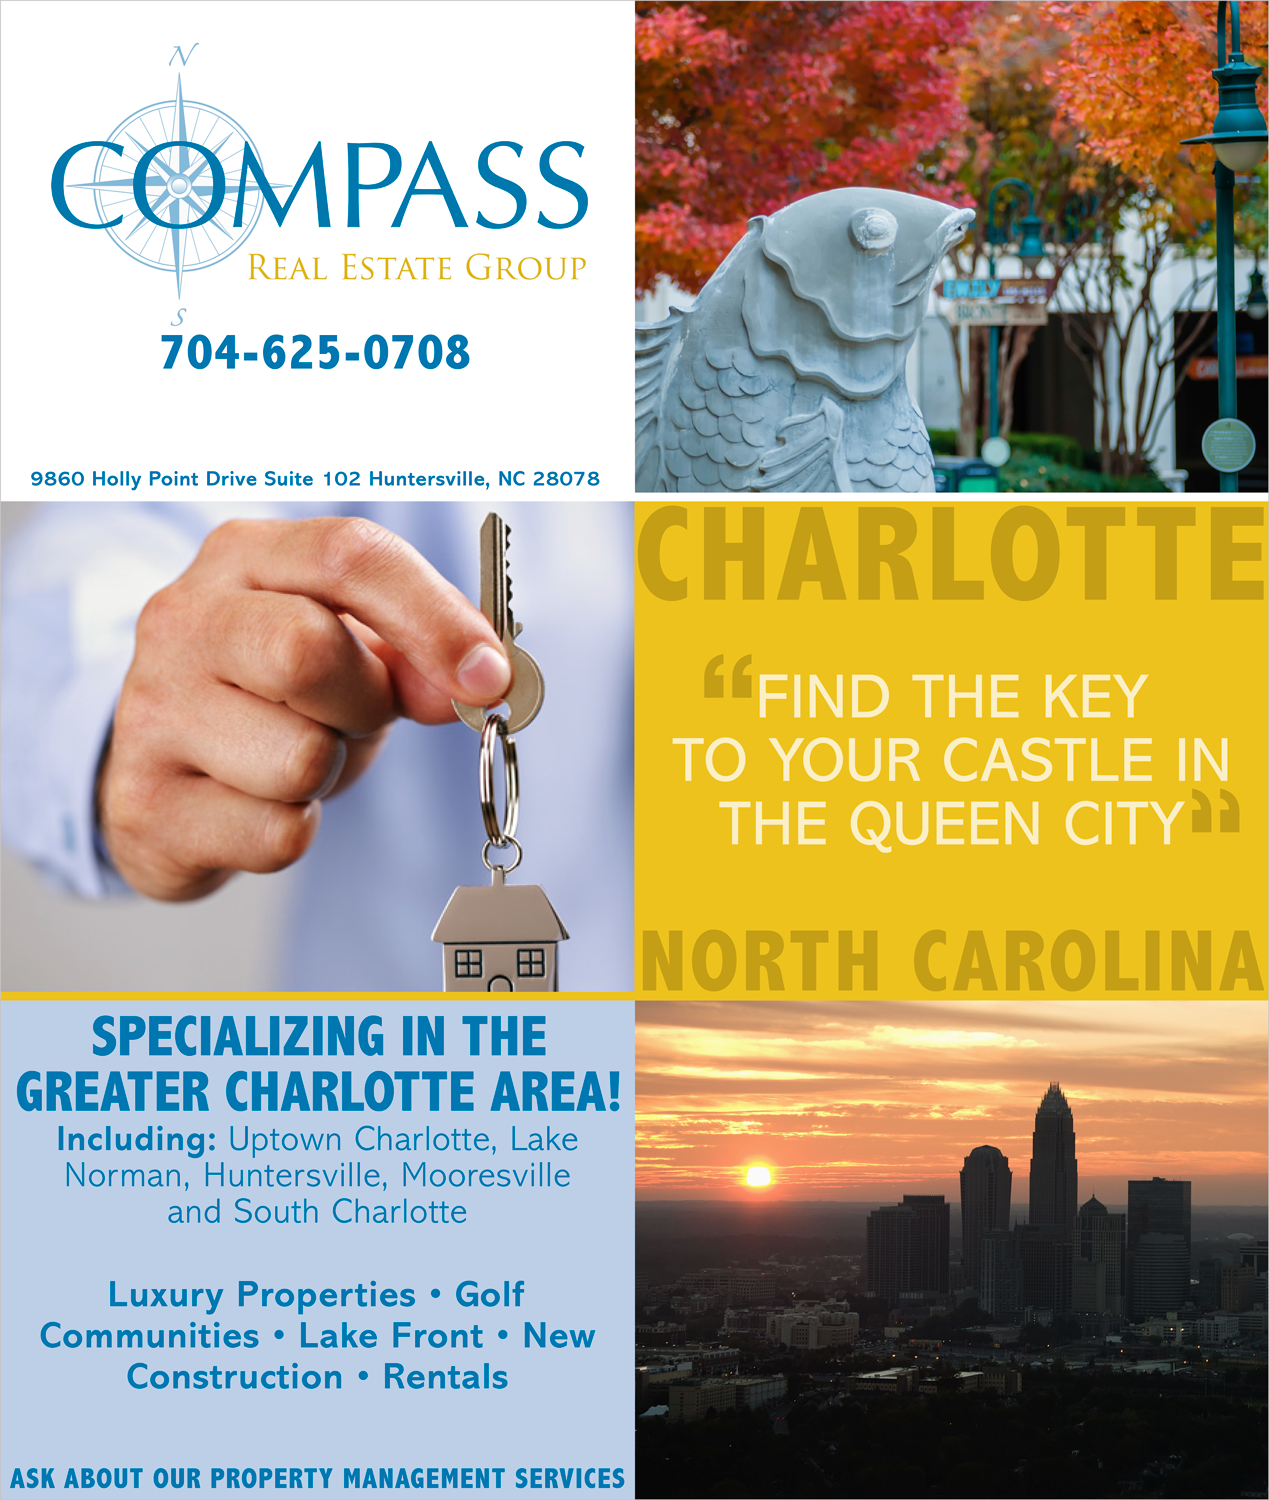 adrian naccari my compass real estate publication ad